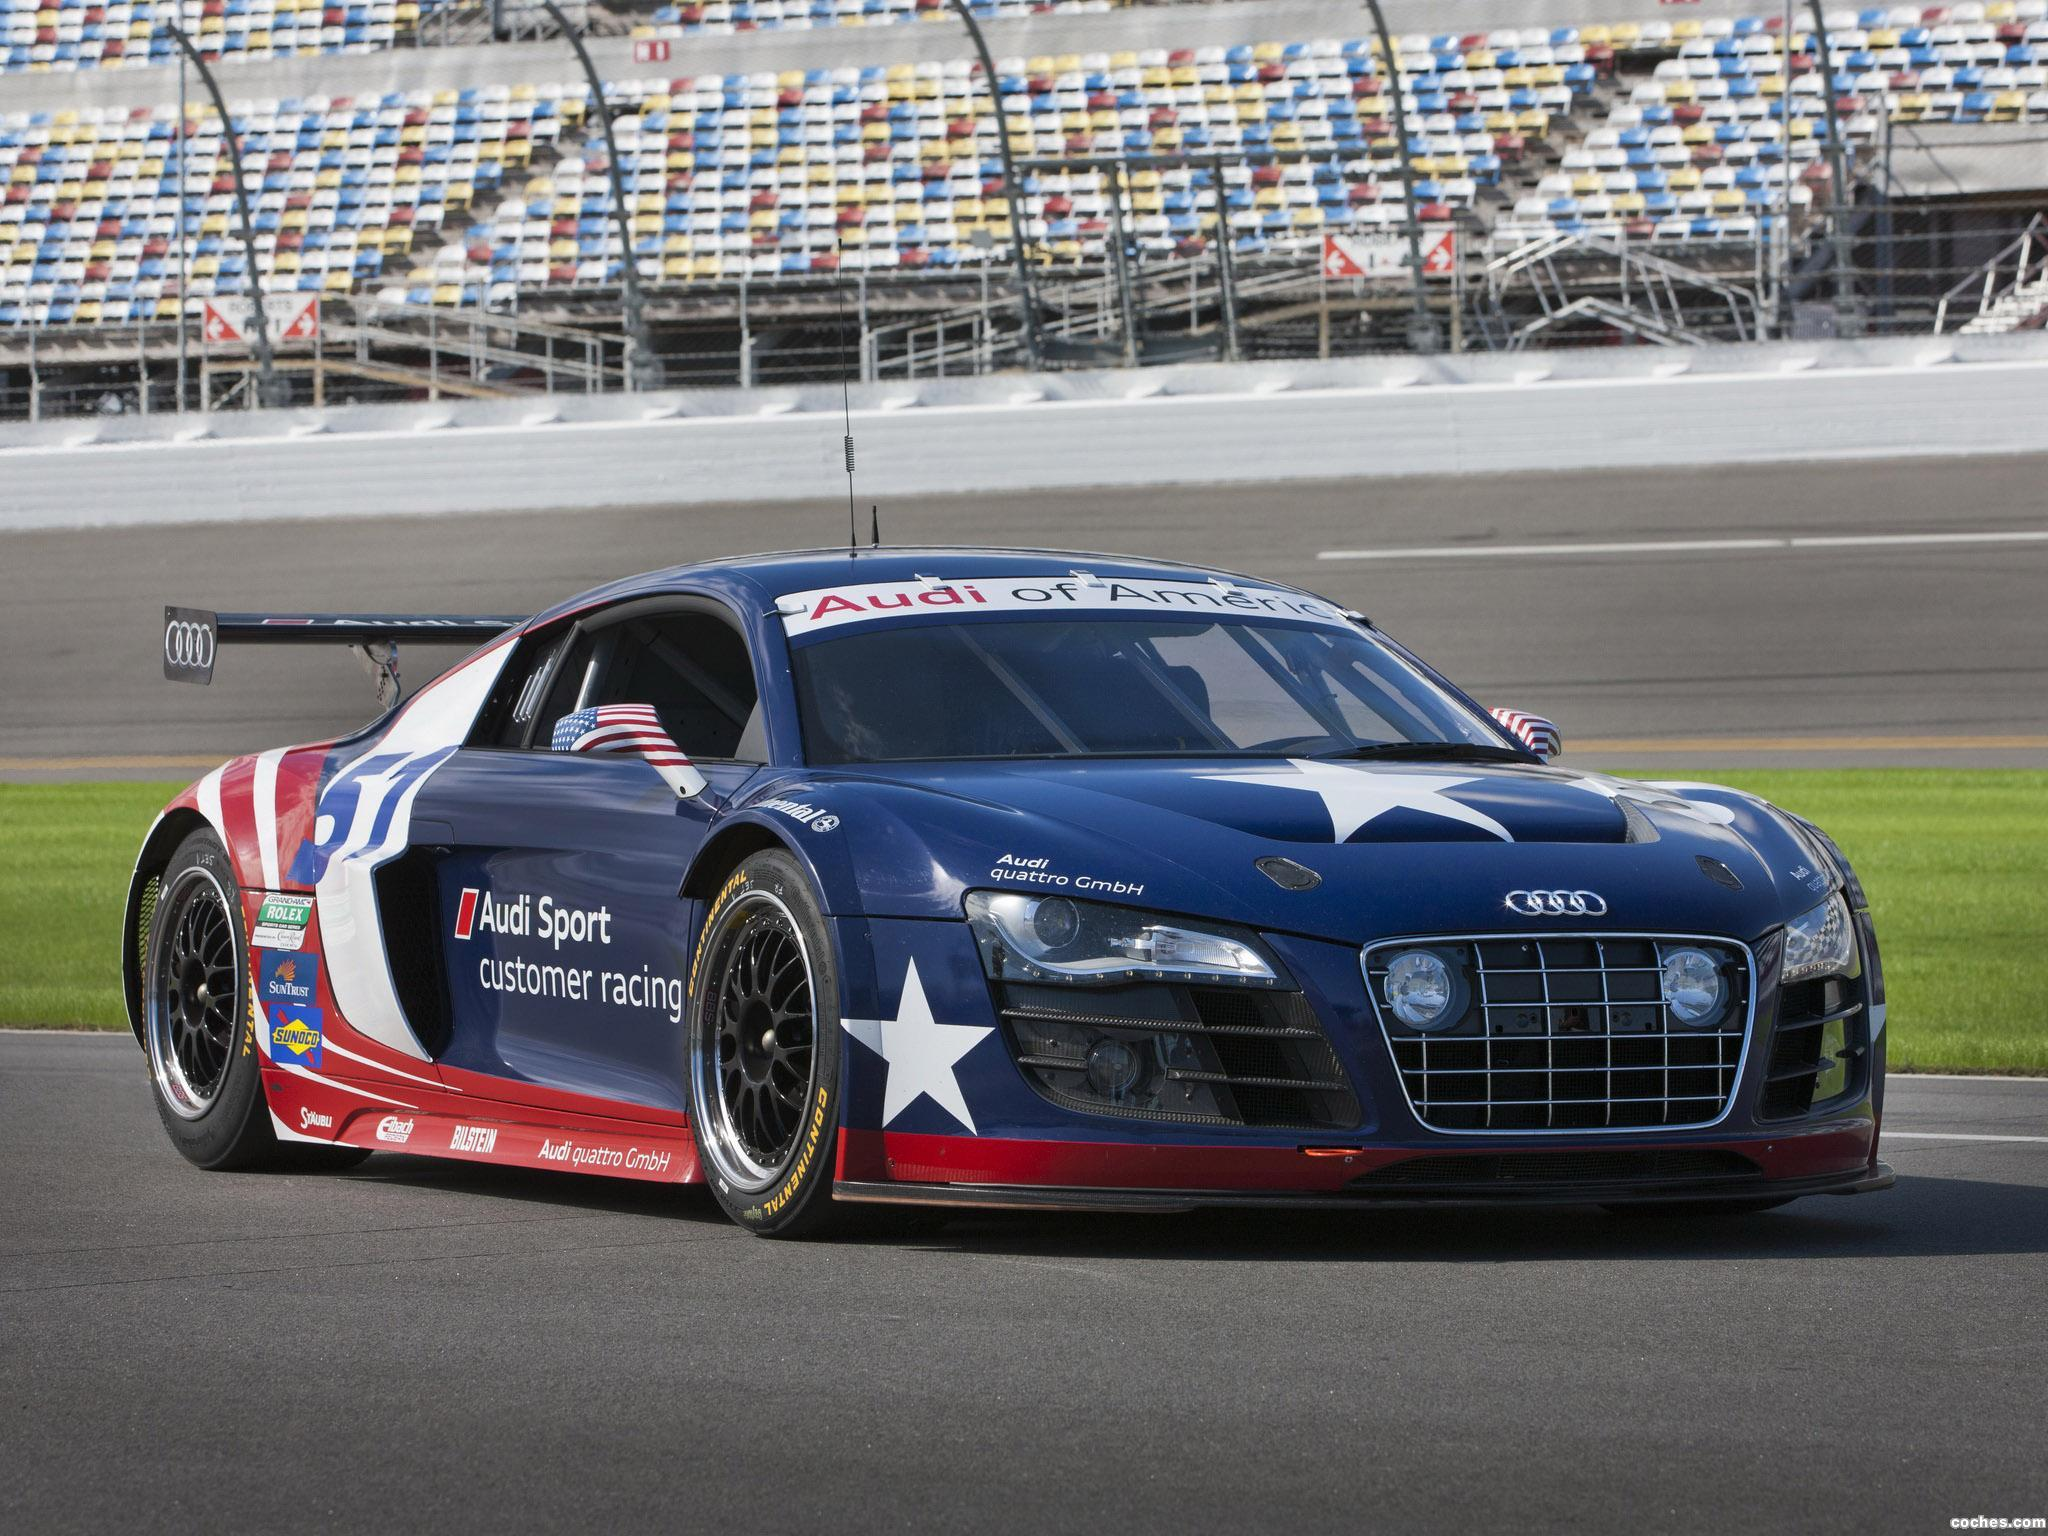 Foto 0 de Audi R8 Grand-Am Daytona 24 Hours 2012